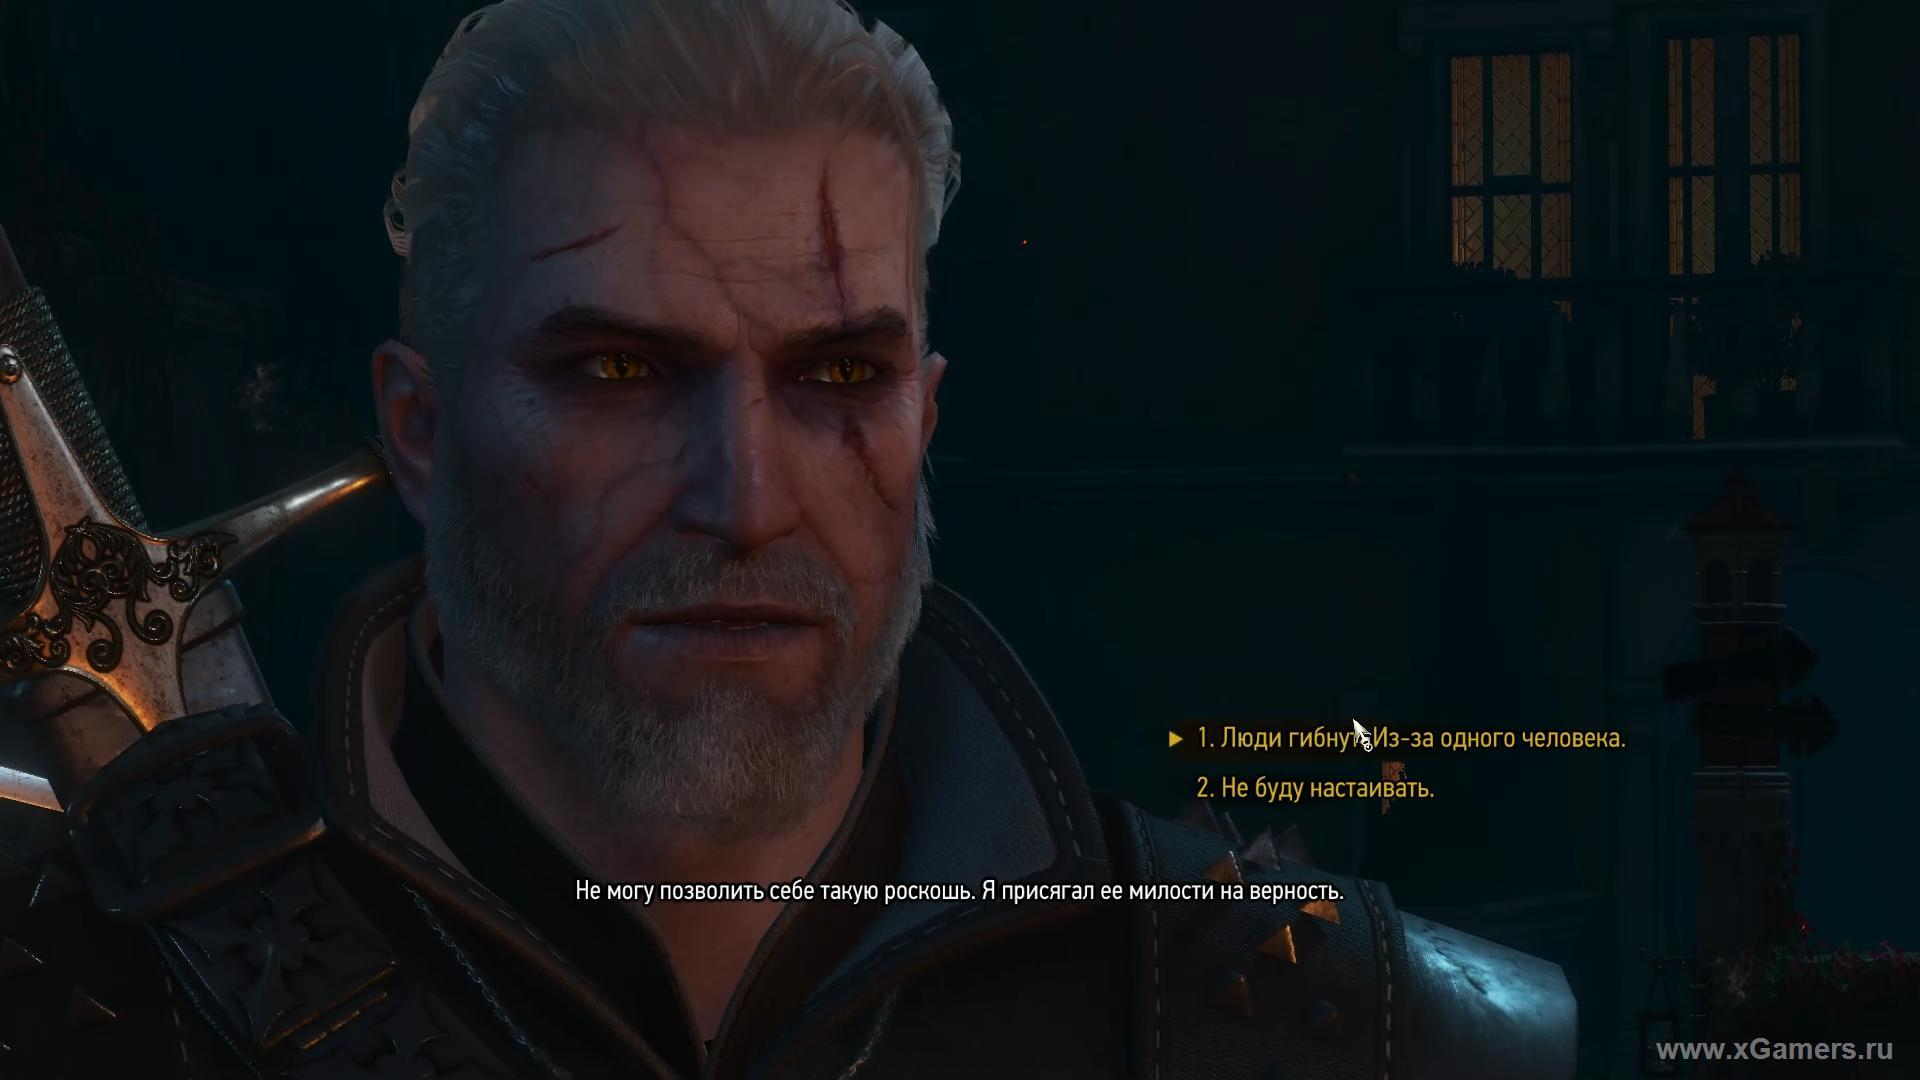 Witcher The Night of Long - what to choose